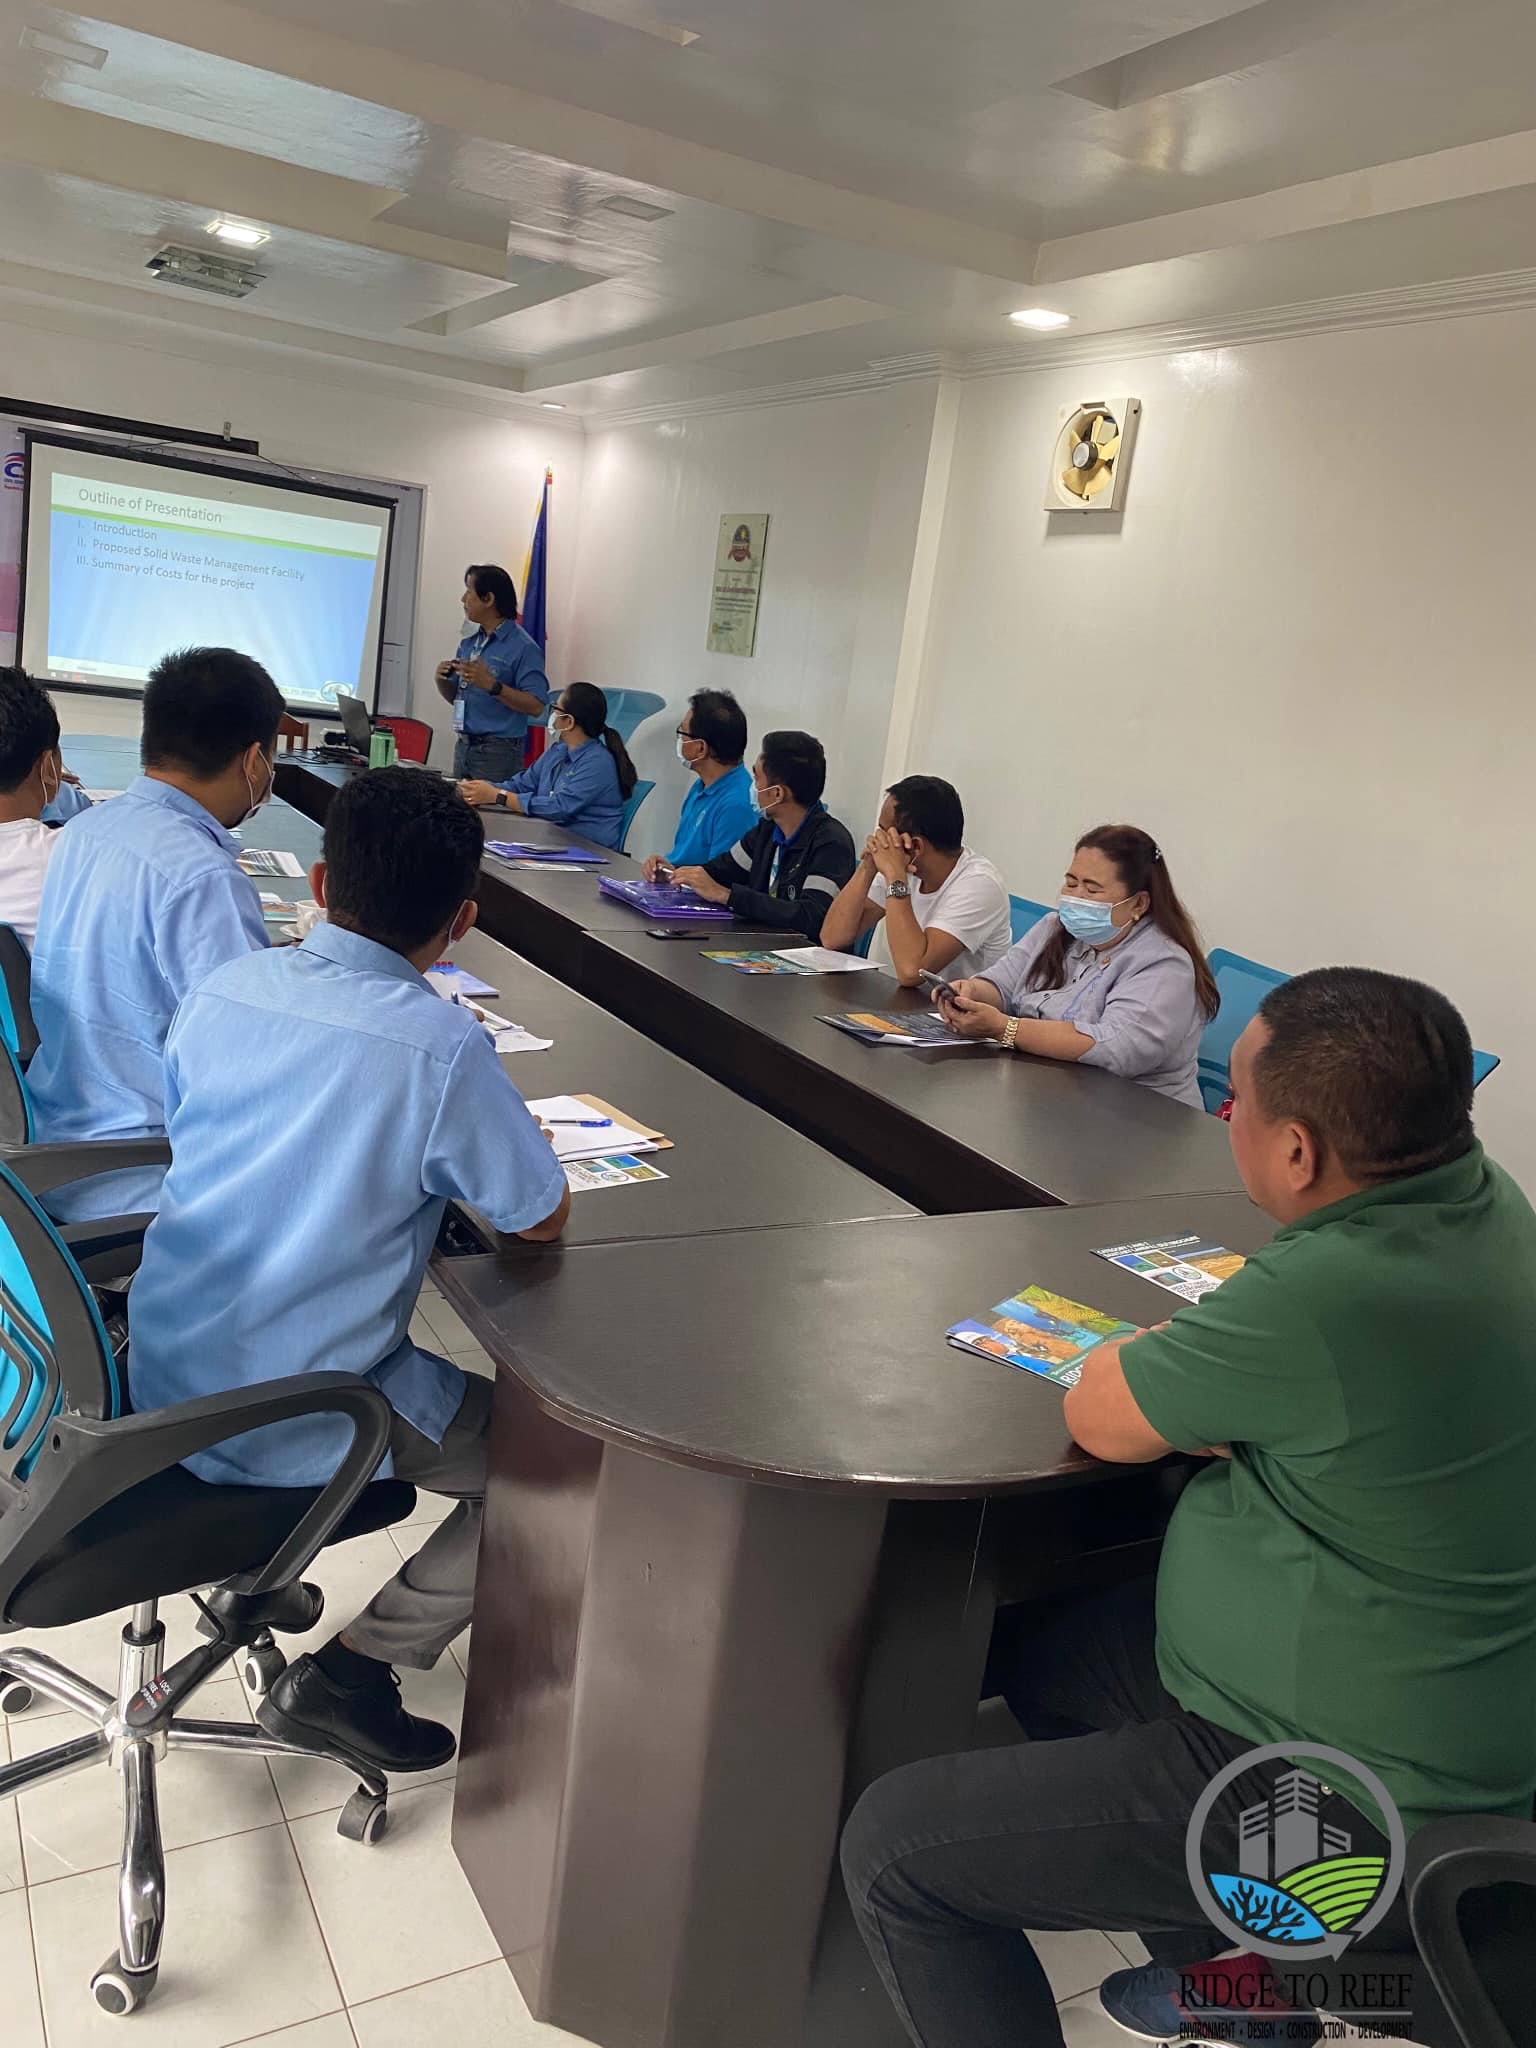 Ridge to Reef's Special Presentation at the Municipality of Malapatan for a Proposed Sanitary Landfill Facility Project